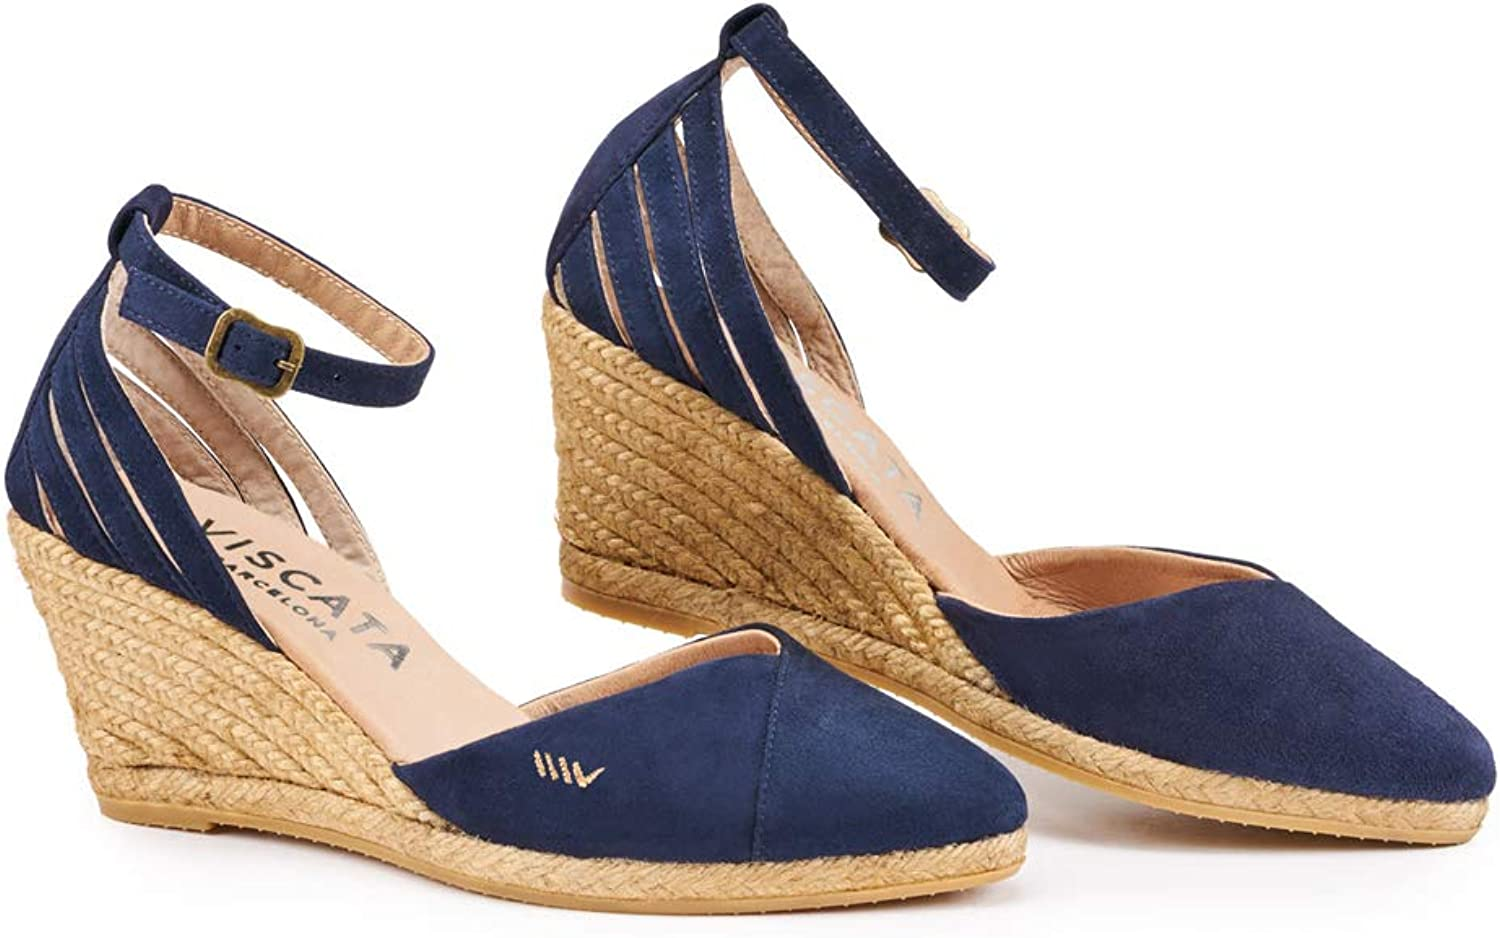 VISCATA Handmade in Spain Ullastret Suede 3  Wedge, Fashion Ankle-Strap, Closed Toe, Classic Espadrilles Heel